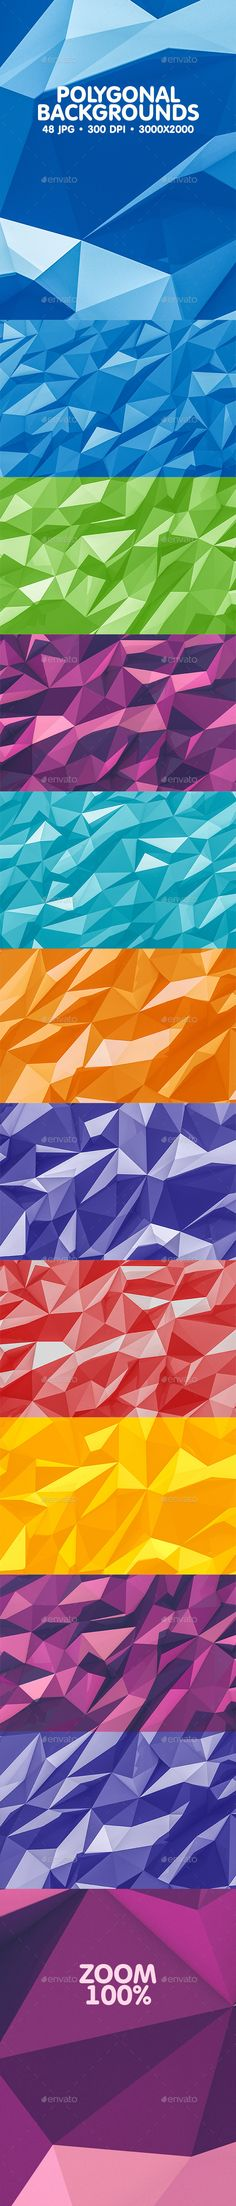 Polygonal Backgrounds - Abstract #Backgrounds Download here: https://graphicriver.net/item/polygonal-backgrounds/20183638?ref=alena994